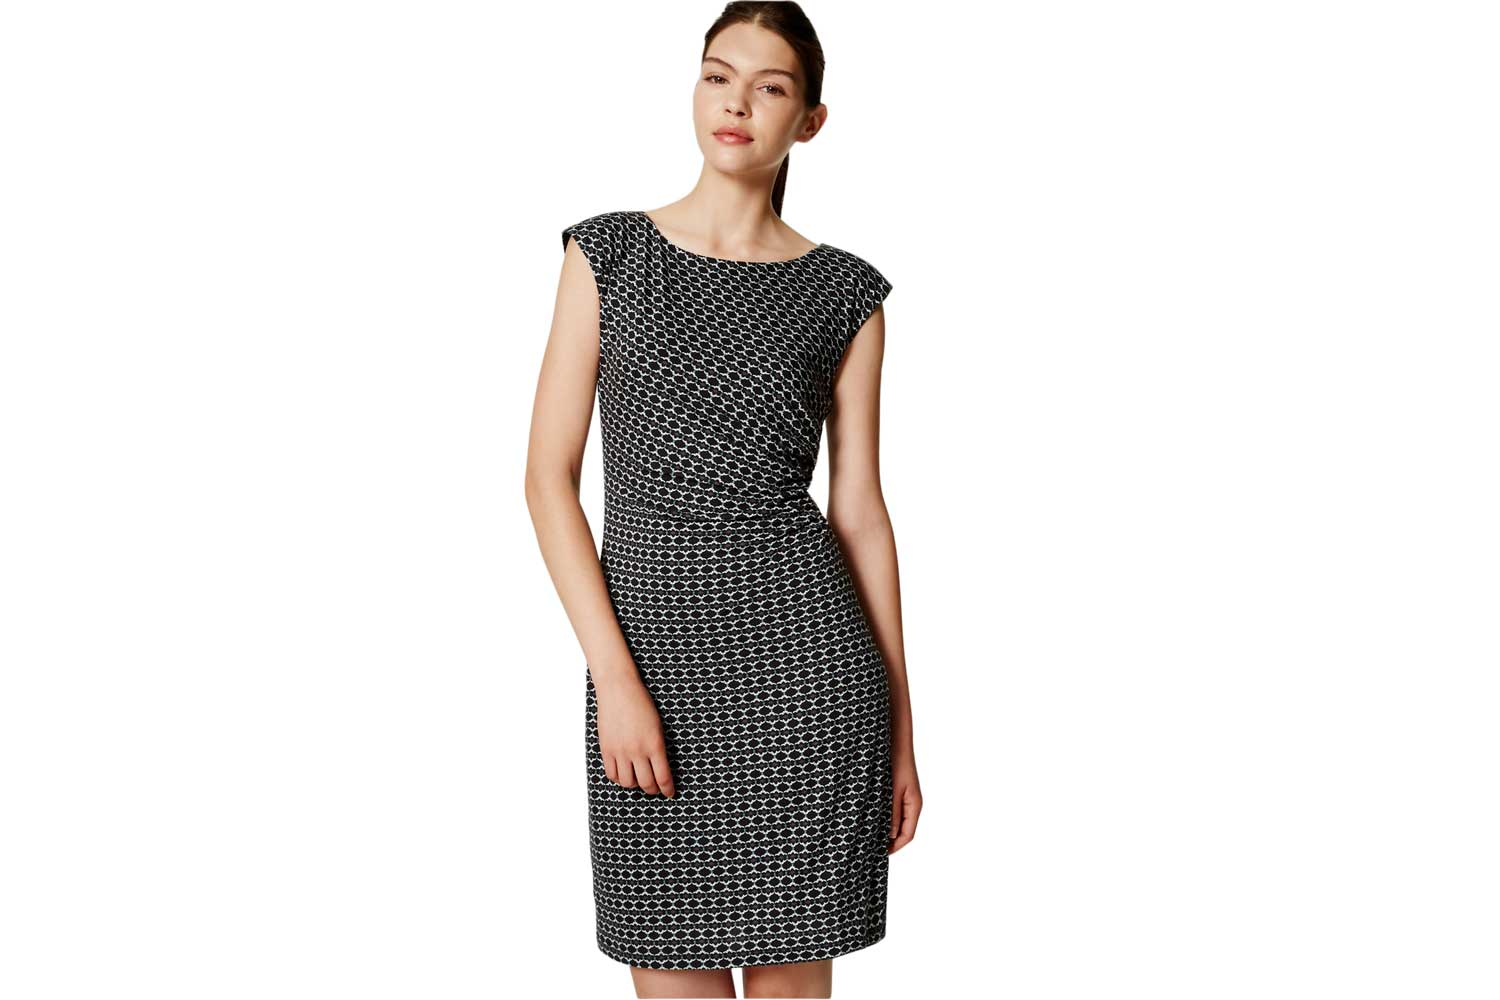 7 Affordable Work Dresses | Real Simple